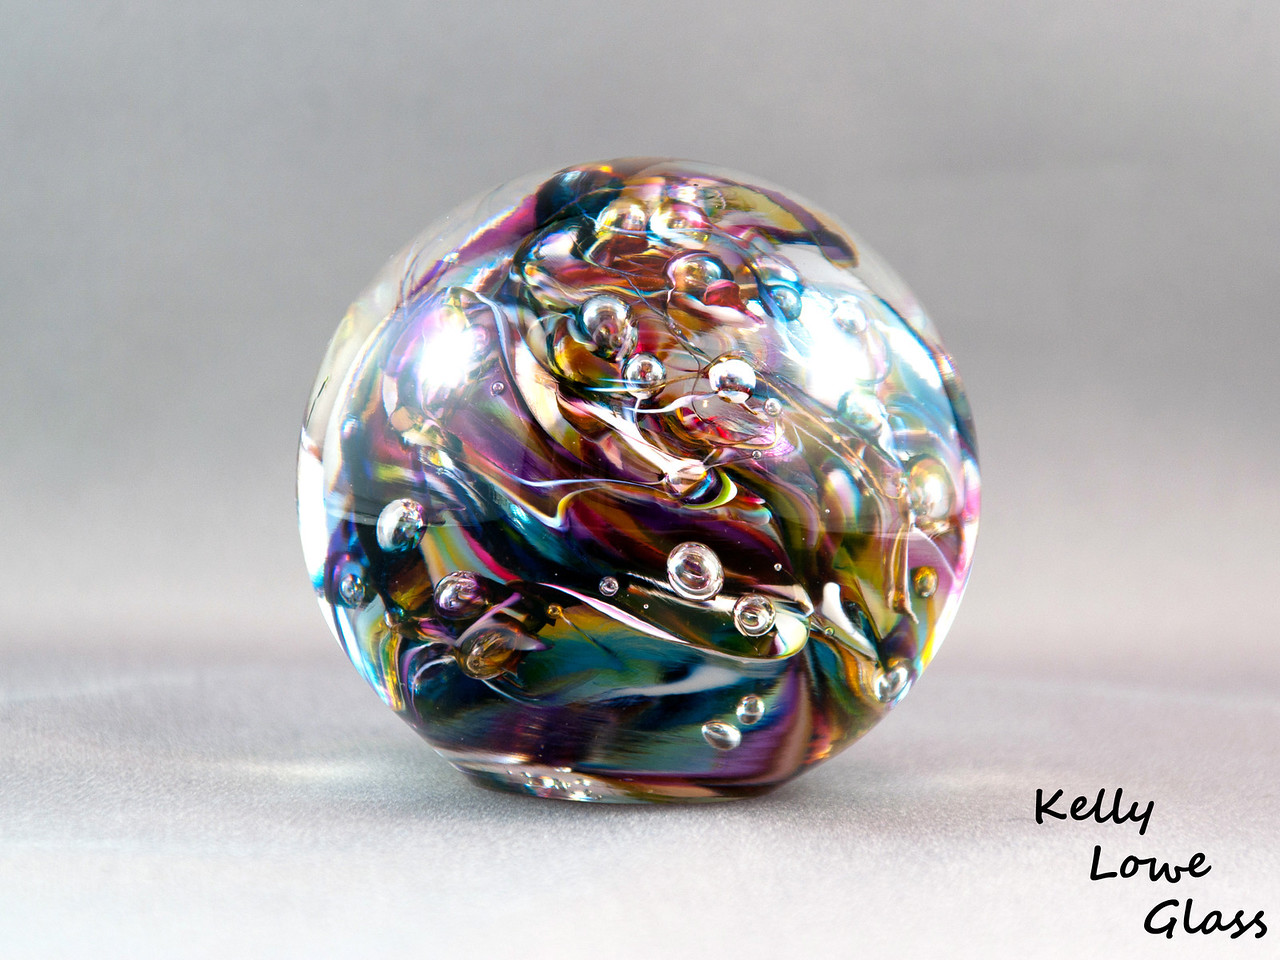 """Glass Paperweight:  Widest Point: 8.5cm (3.35"""") Height: 7.5cm (2.95"""") Weight: Approx 772g (1.7 lbs)"""